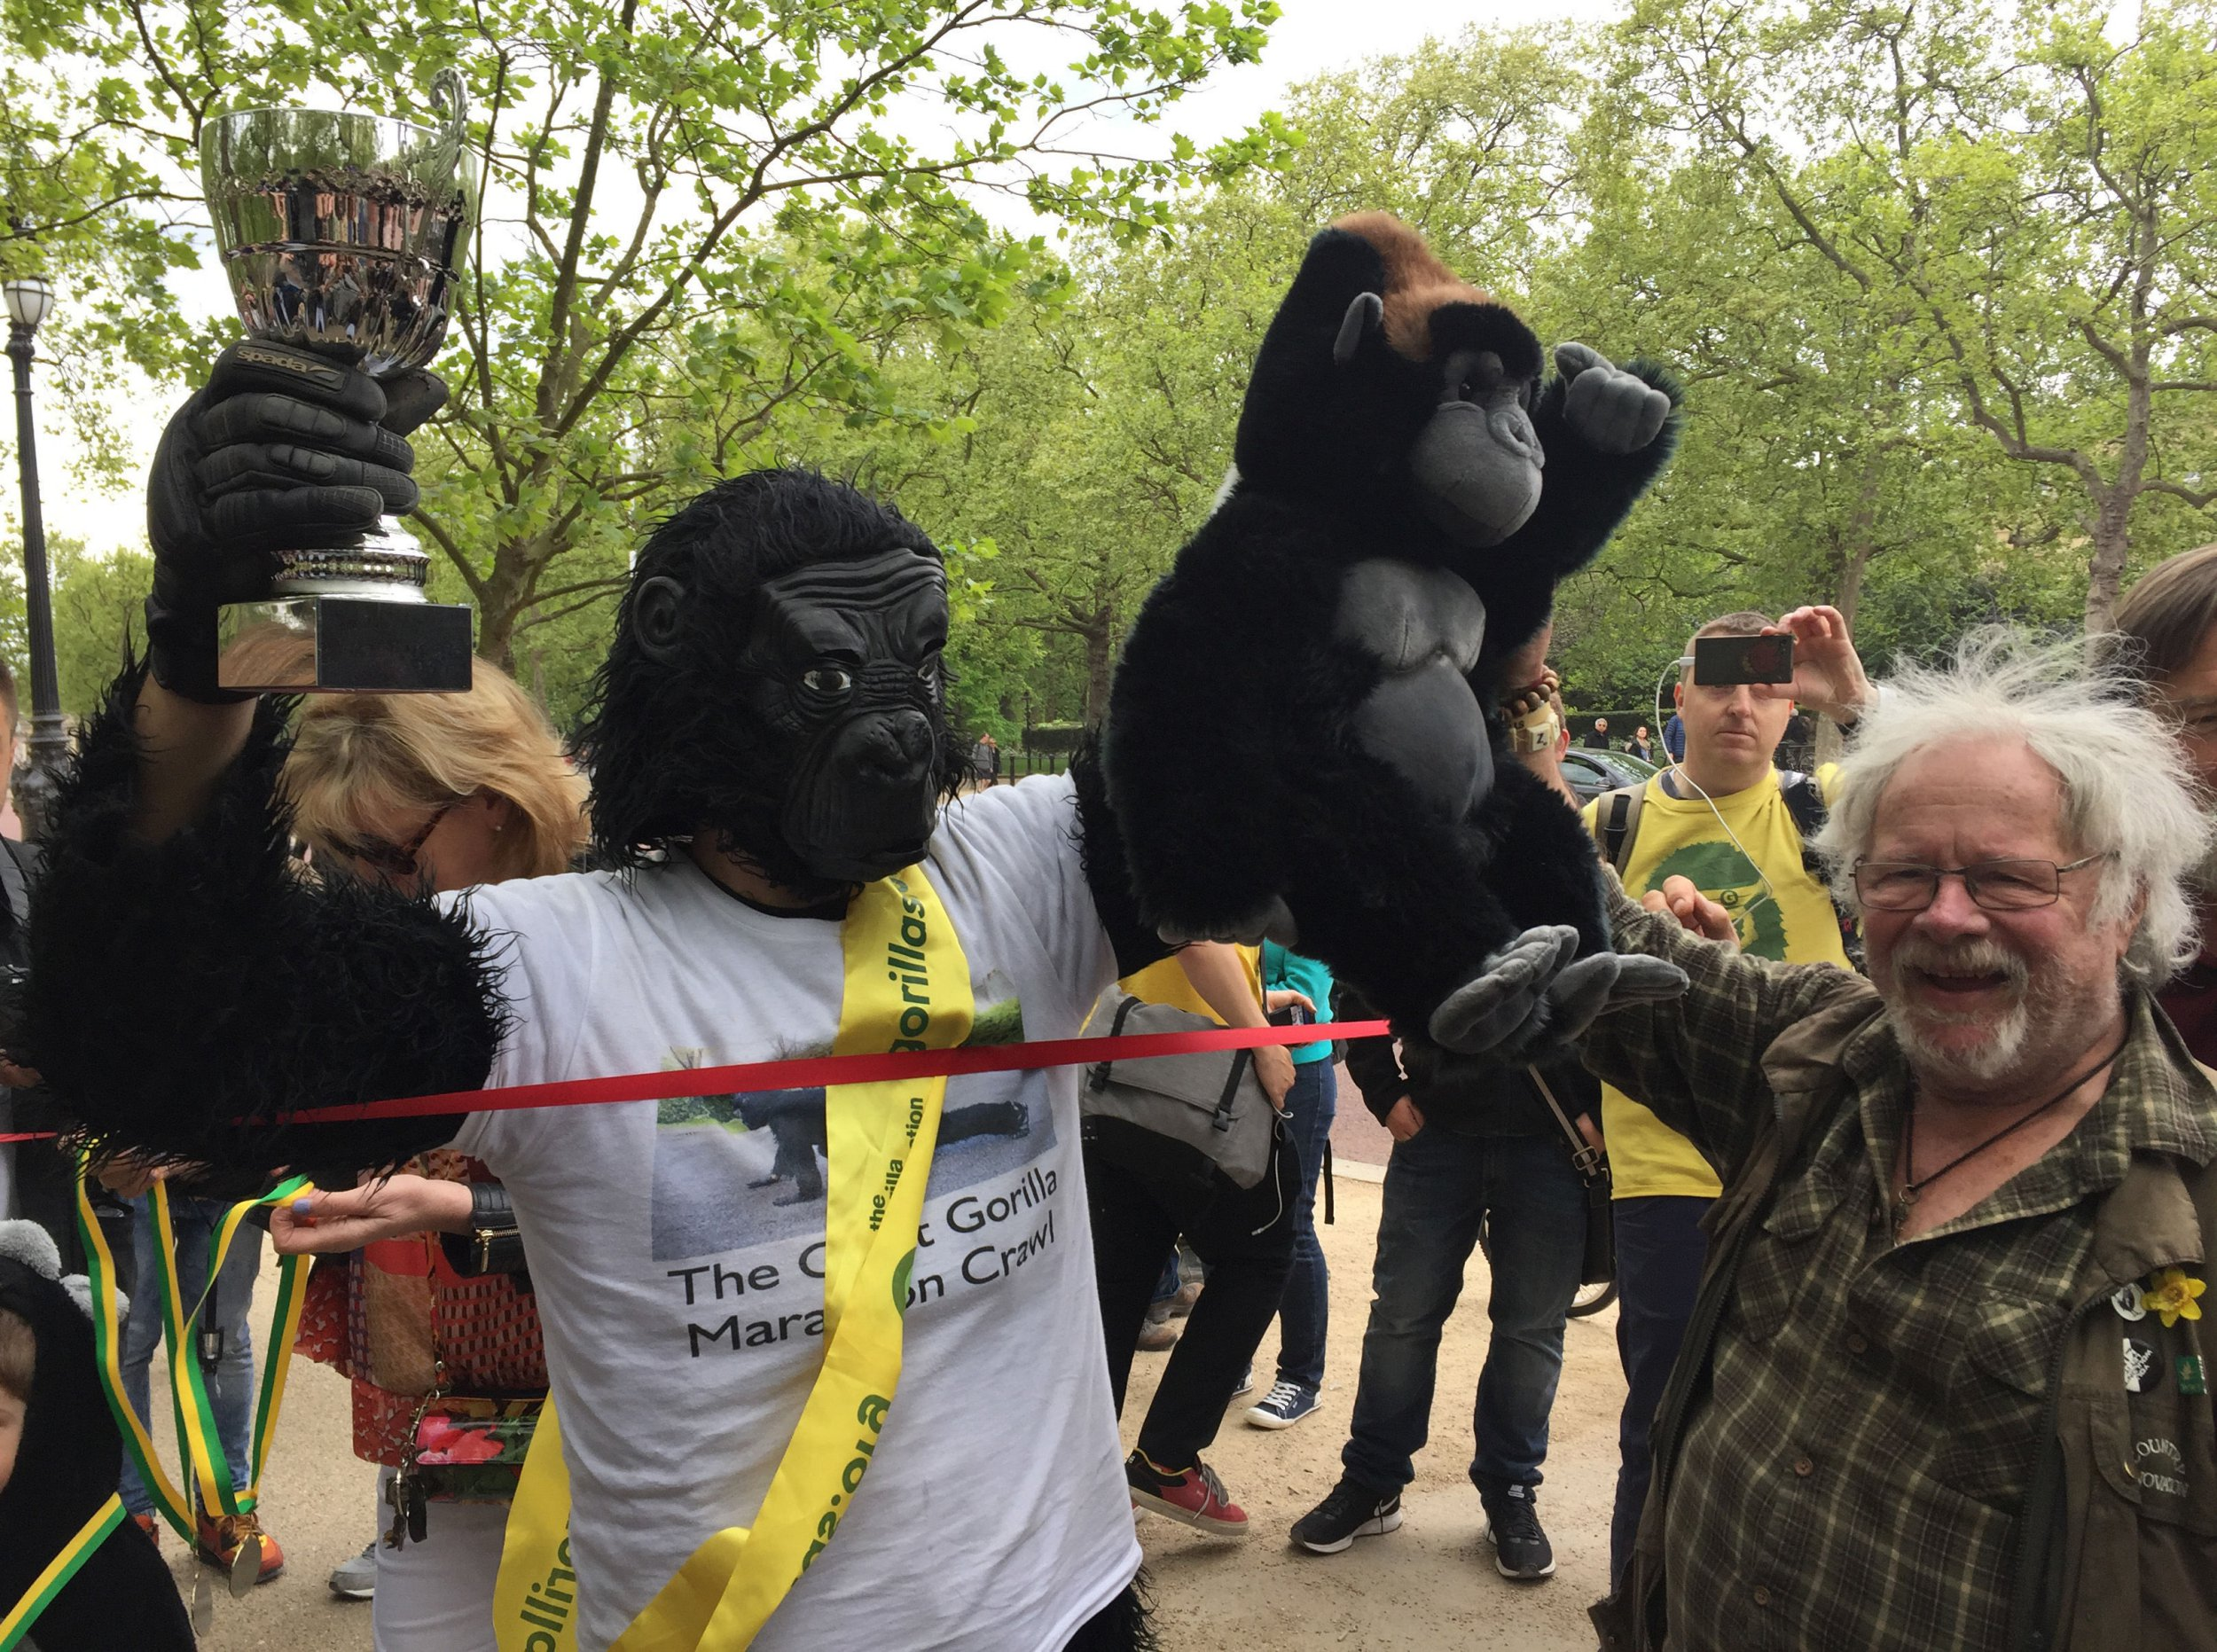 'Mr Gorilla' raises £50,000 for charity after crawling London Marathon